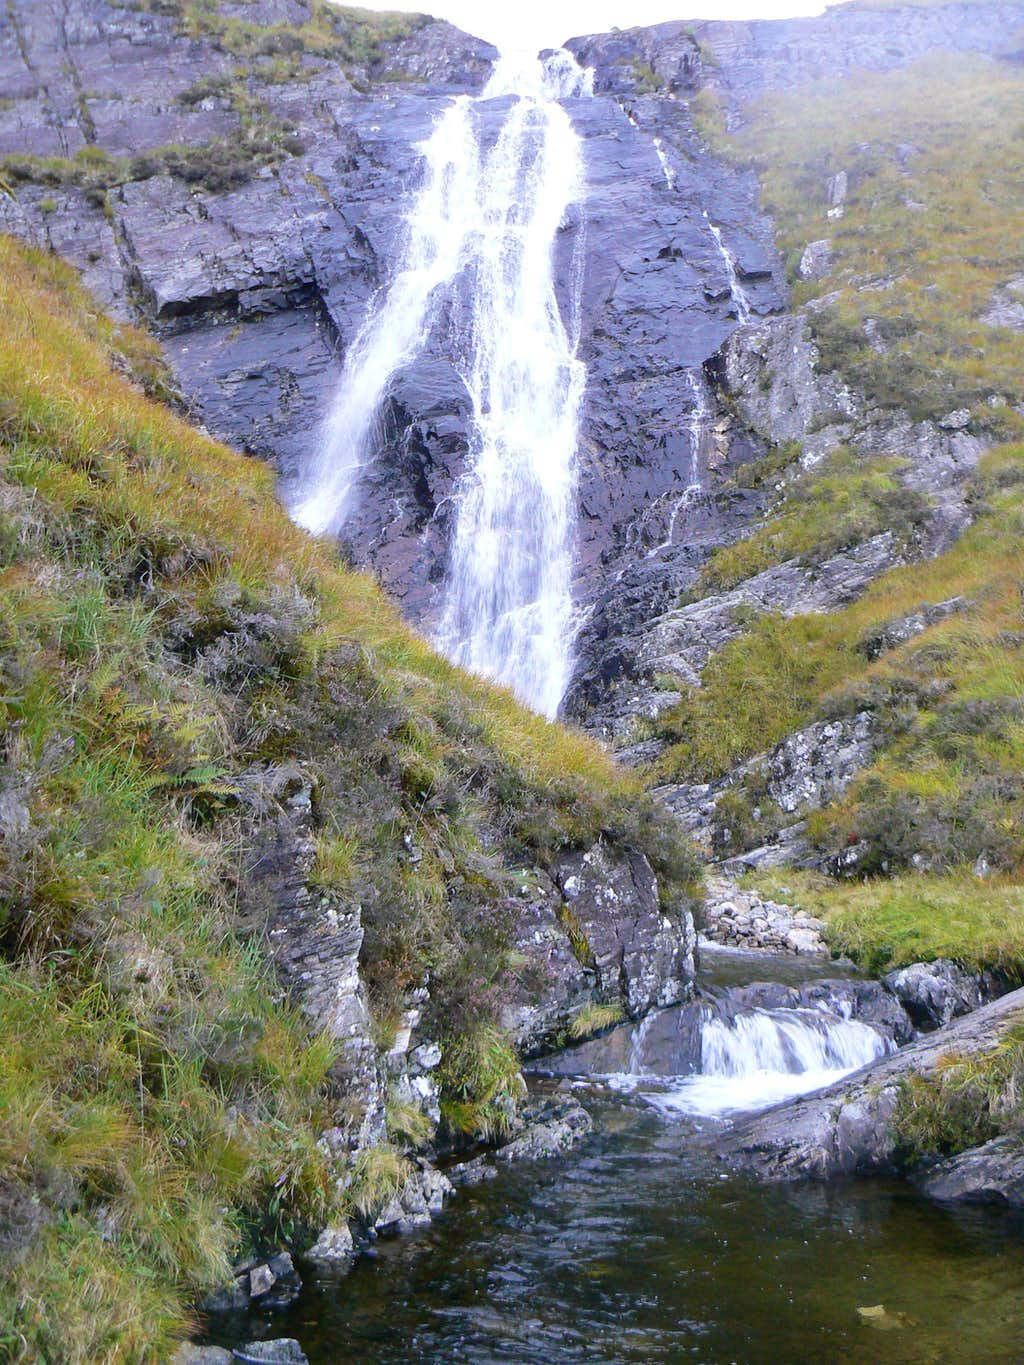 One section of Stob Ghabhar's waterfall